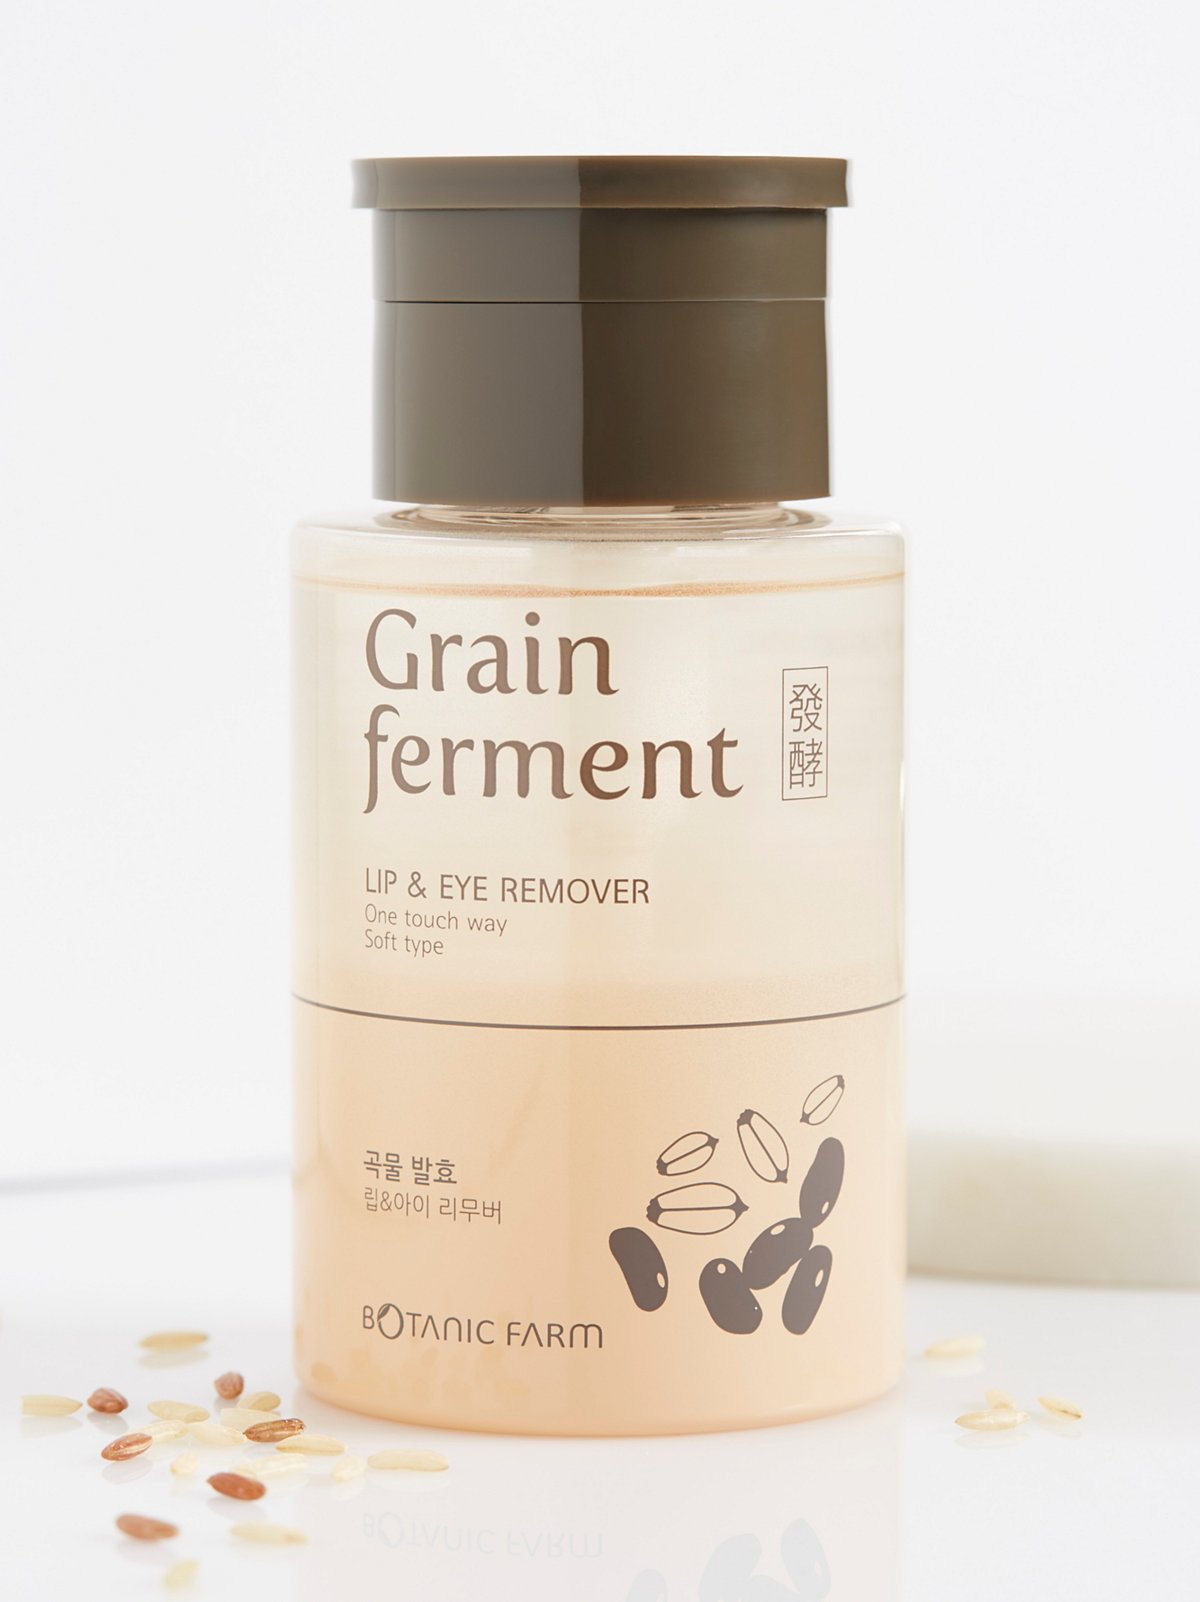 Grain Ferment Lip & Eye Remover